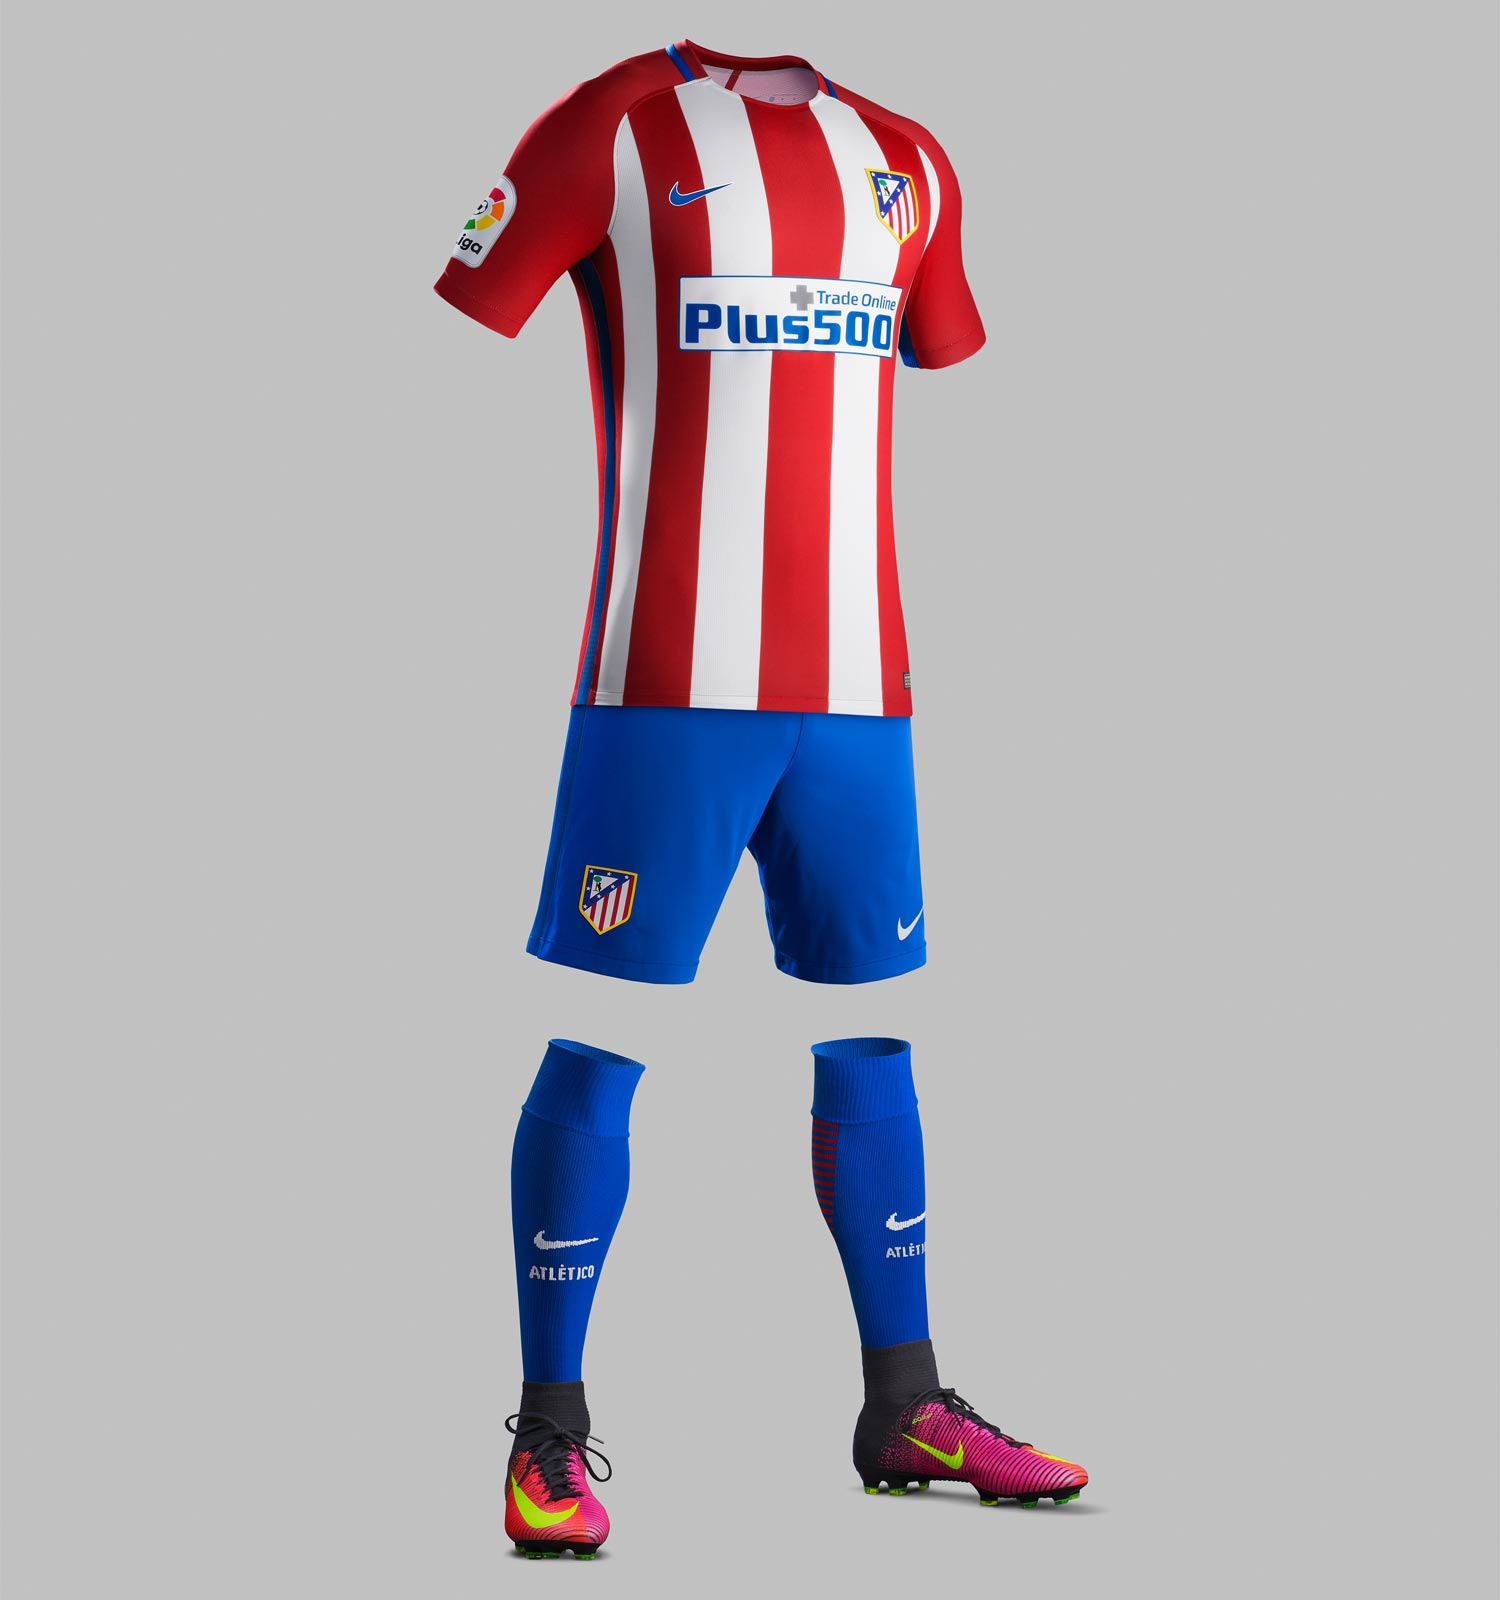 5b01ff9de Atletico Madrid 2016 17 Home Kit Unveiled